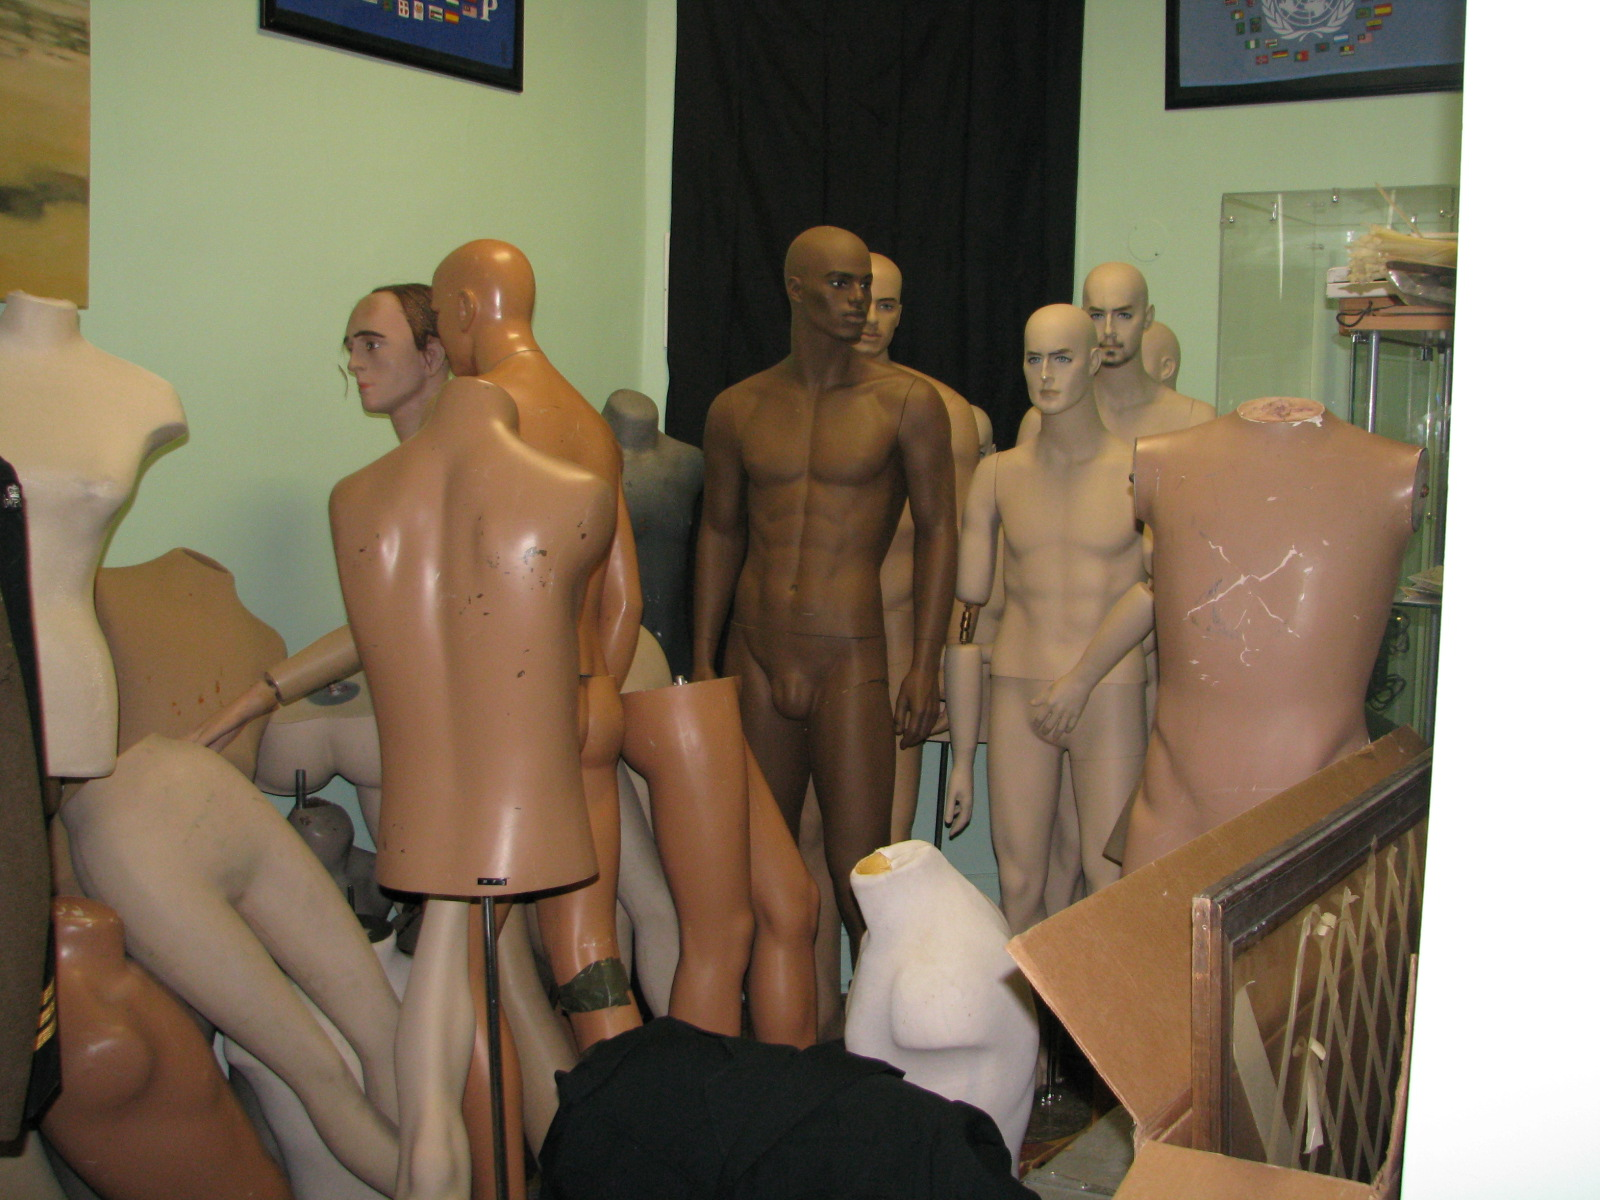 Who needs this many broken mannequins!